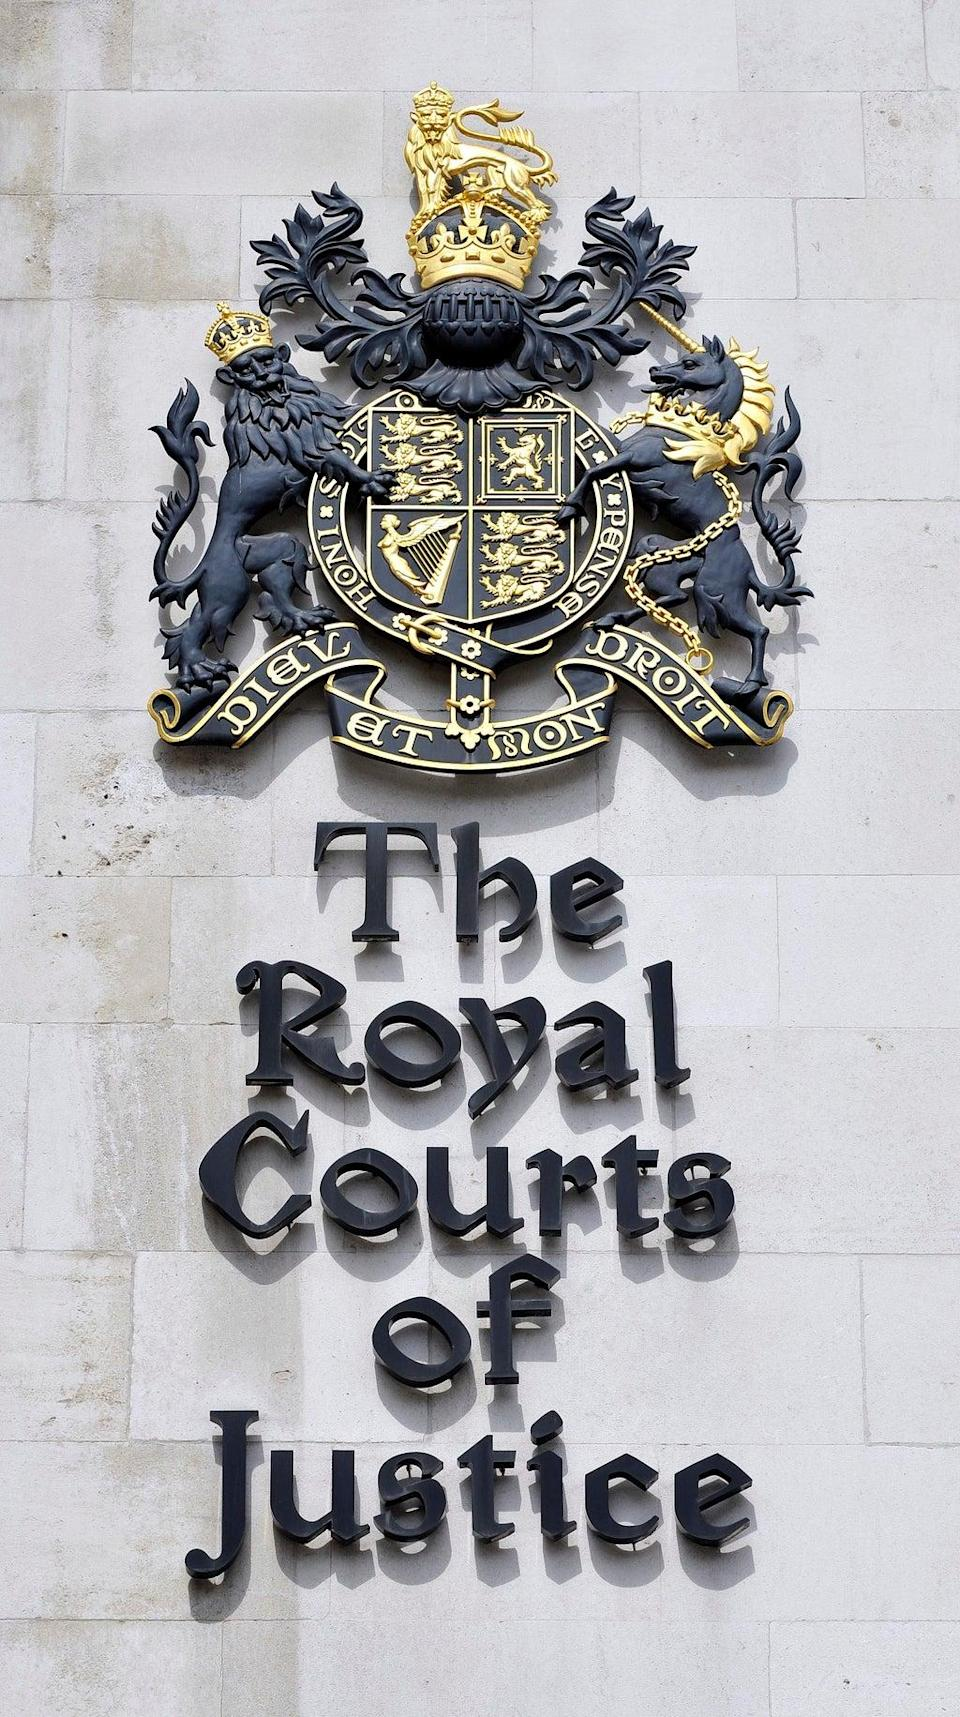 The Royal Courts of Justice, Strand, central London, where Thursday's High Court hearing was staged. PA/Nick Ansell (PA Archive)